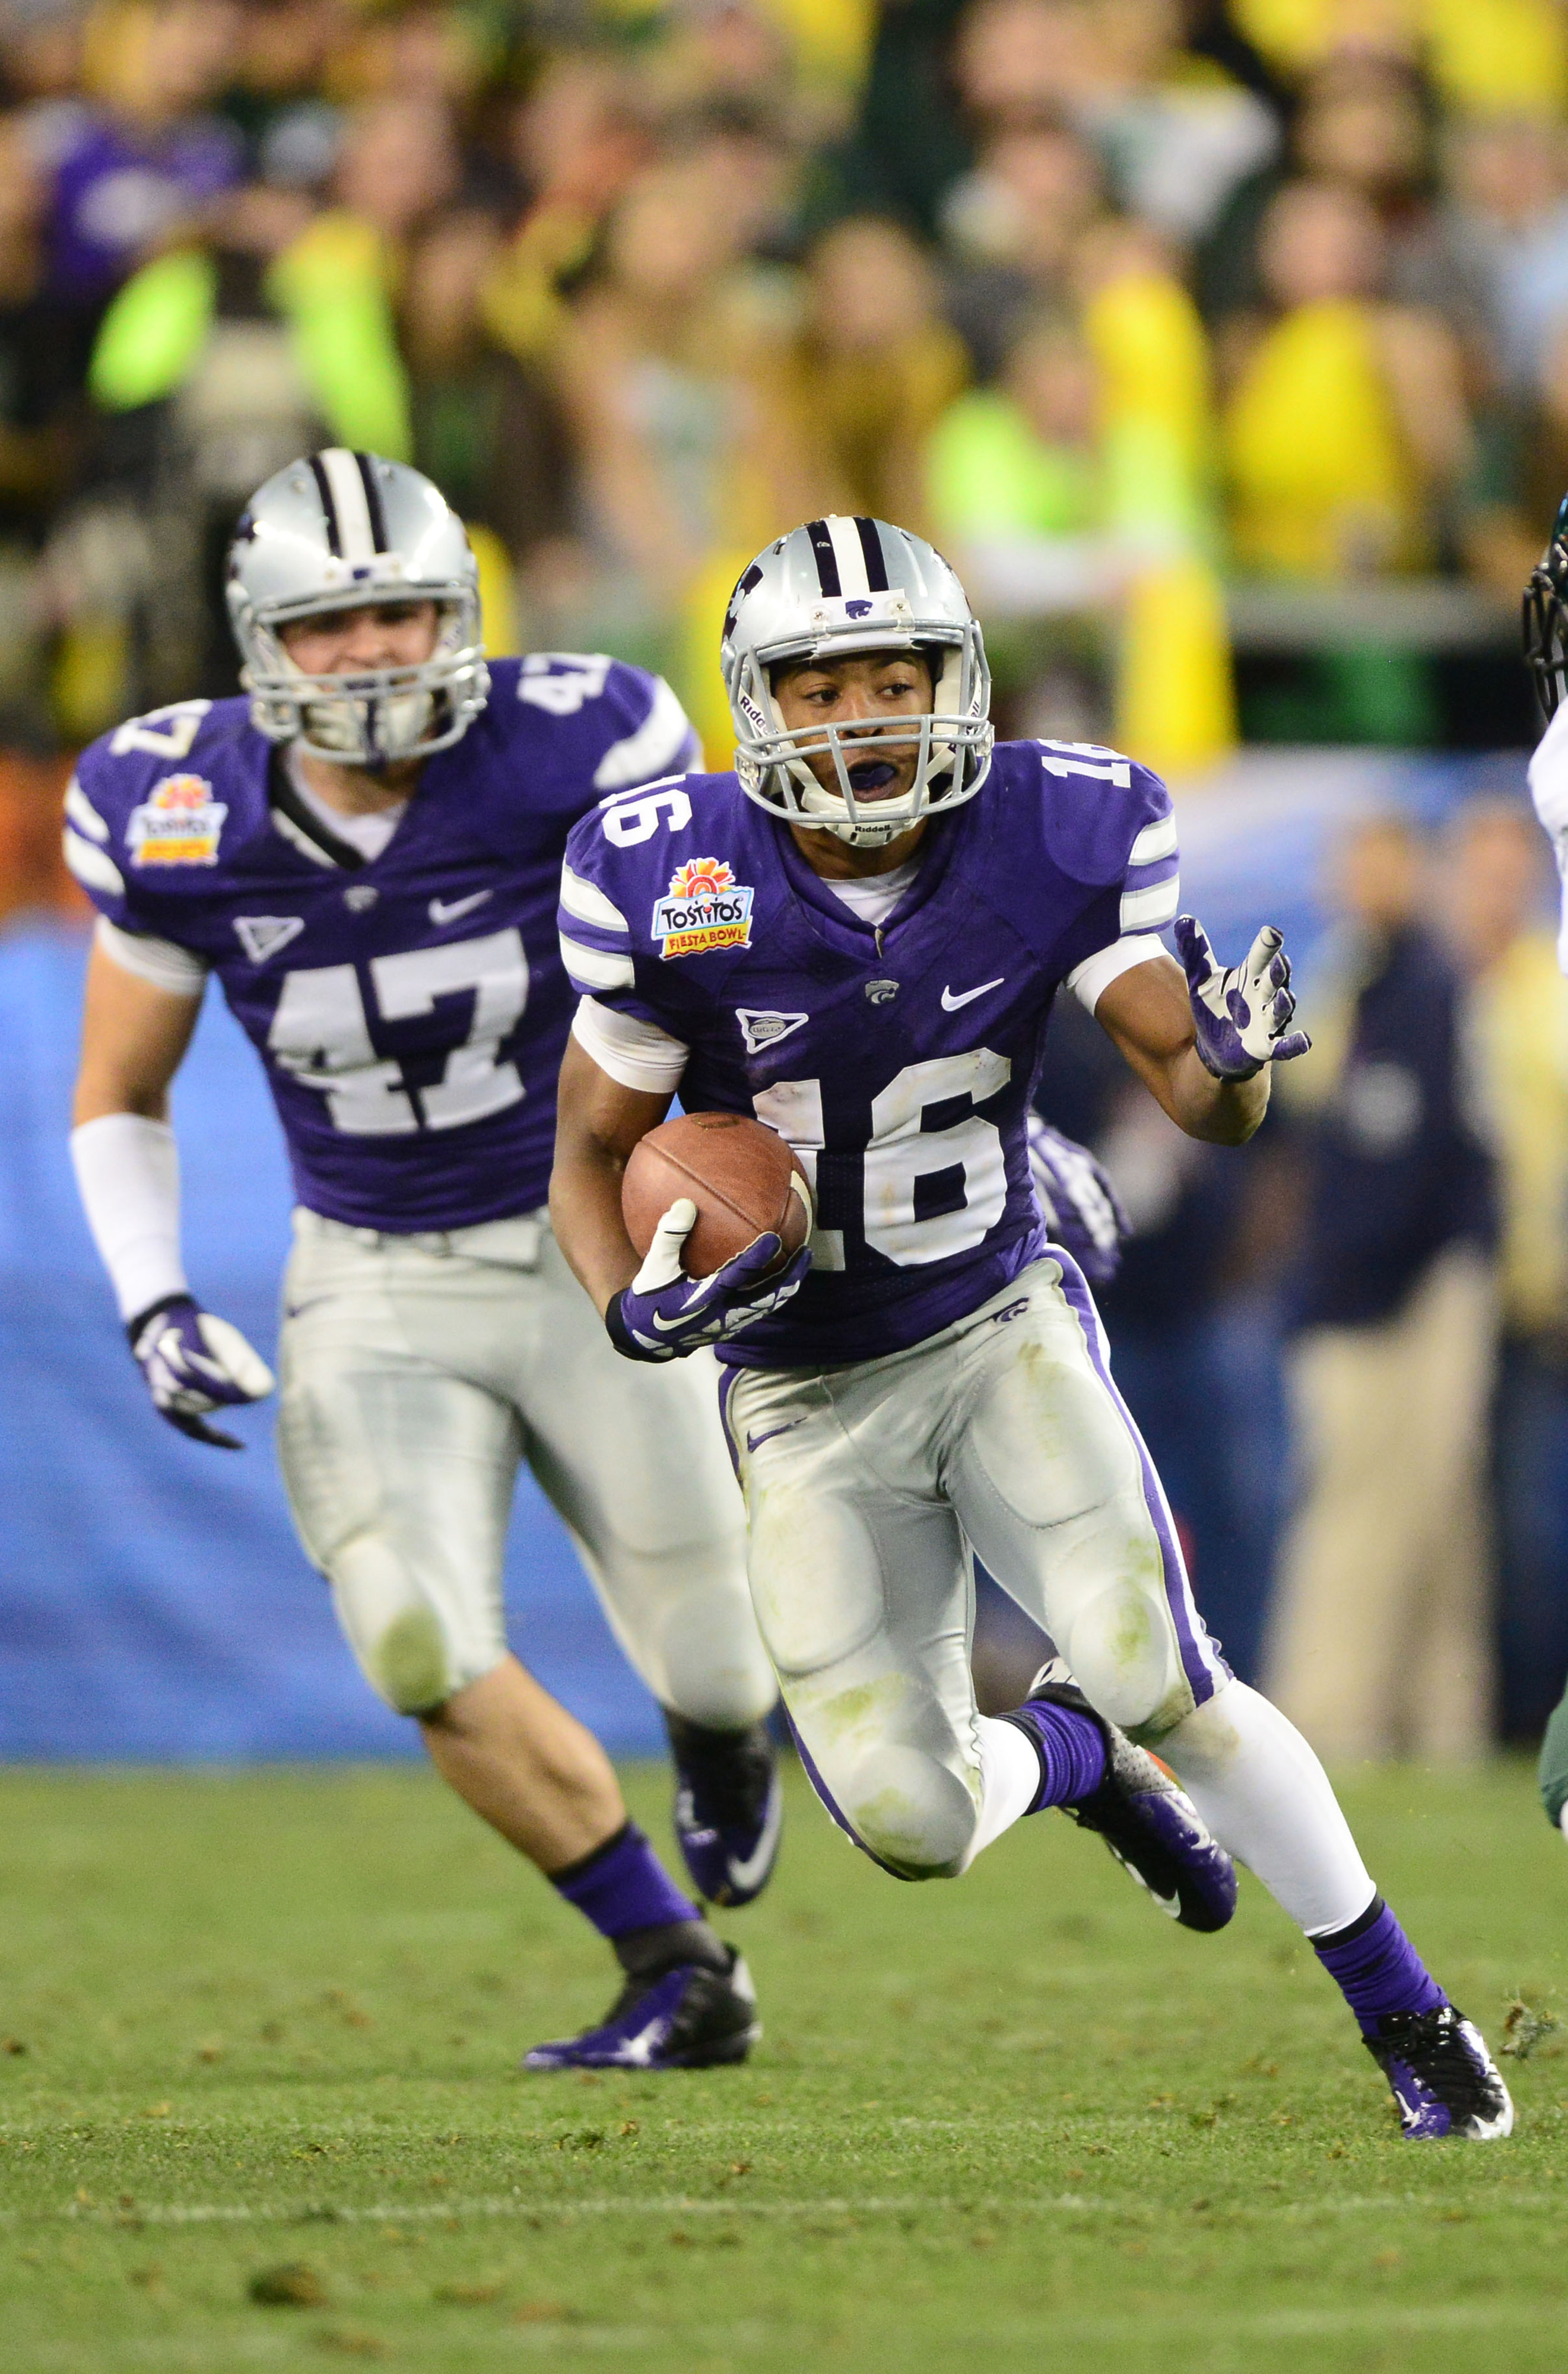 Tyler Lockett has had two amazing seasons so far. Can he become even better?